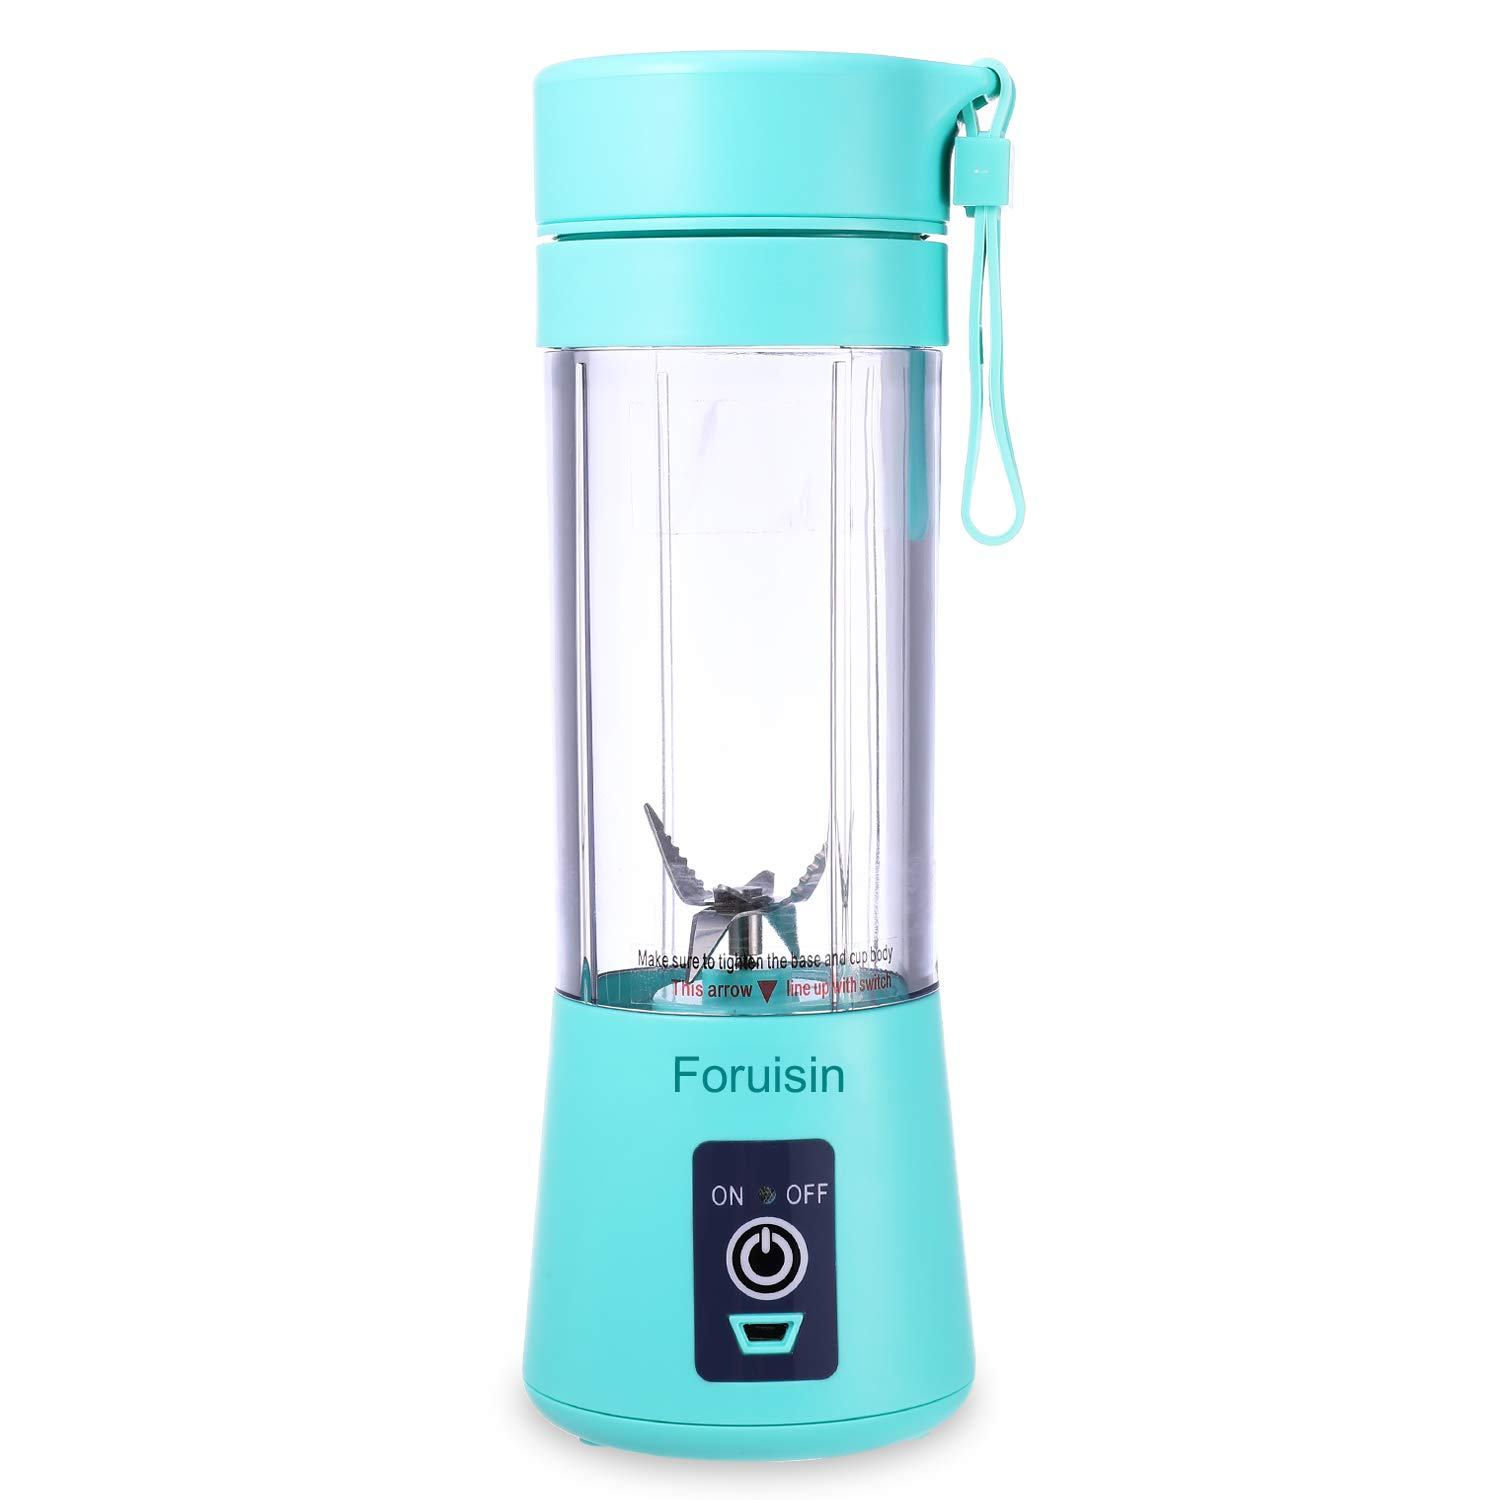 Portable Personal Blender, Household Juicer Fruit Shake Mixer -Six Blades, 380ml Baby Cooking Machine with USB Charger Cable (Cyan)